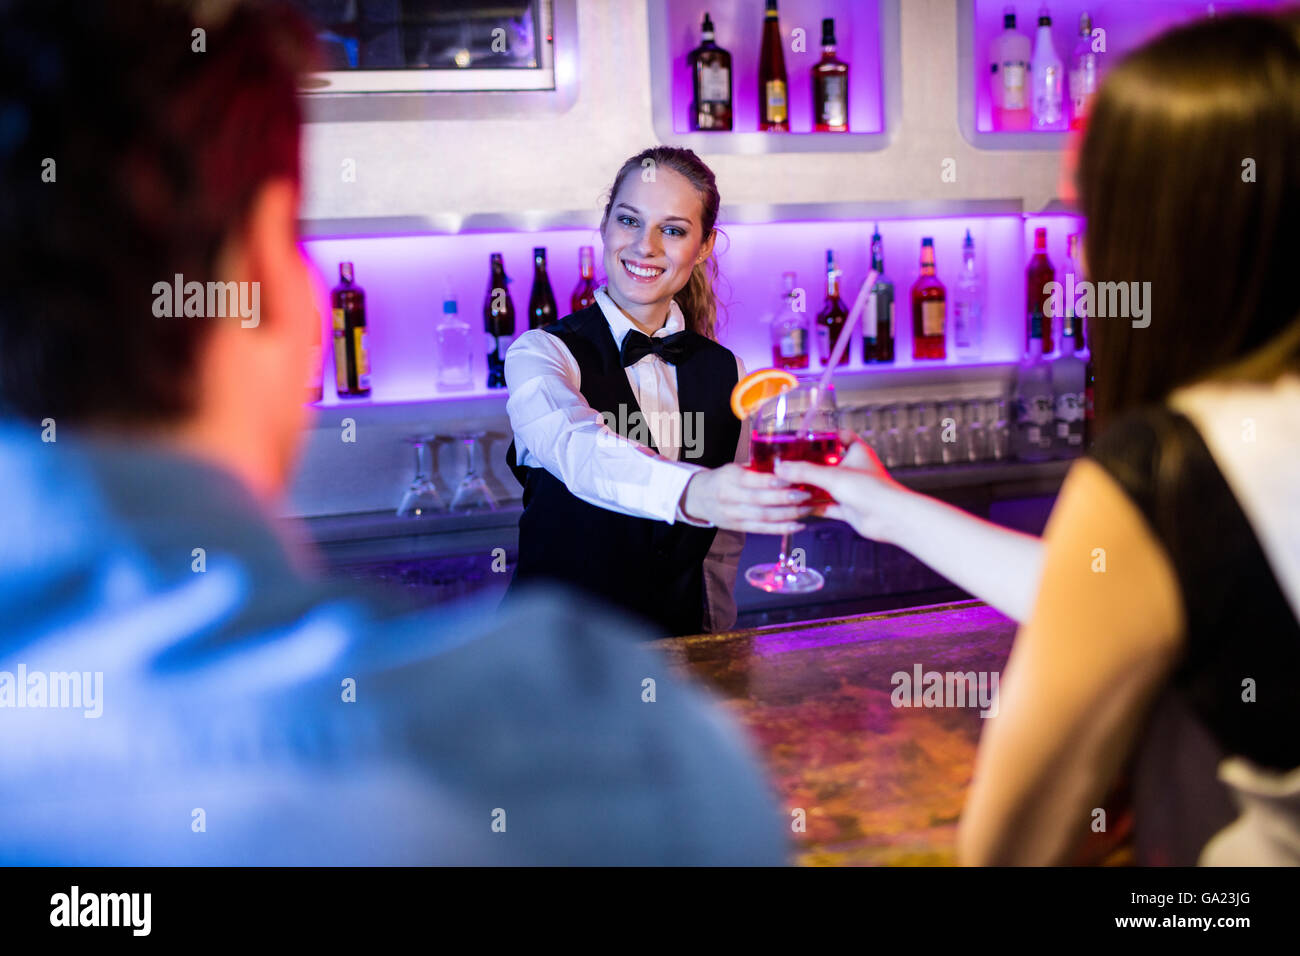 Barmaid serving drink to woman - Stock Image